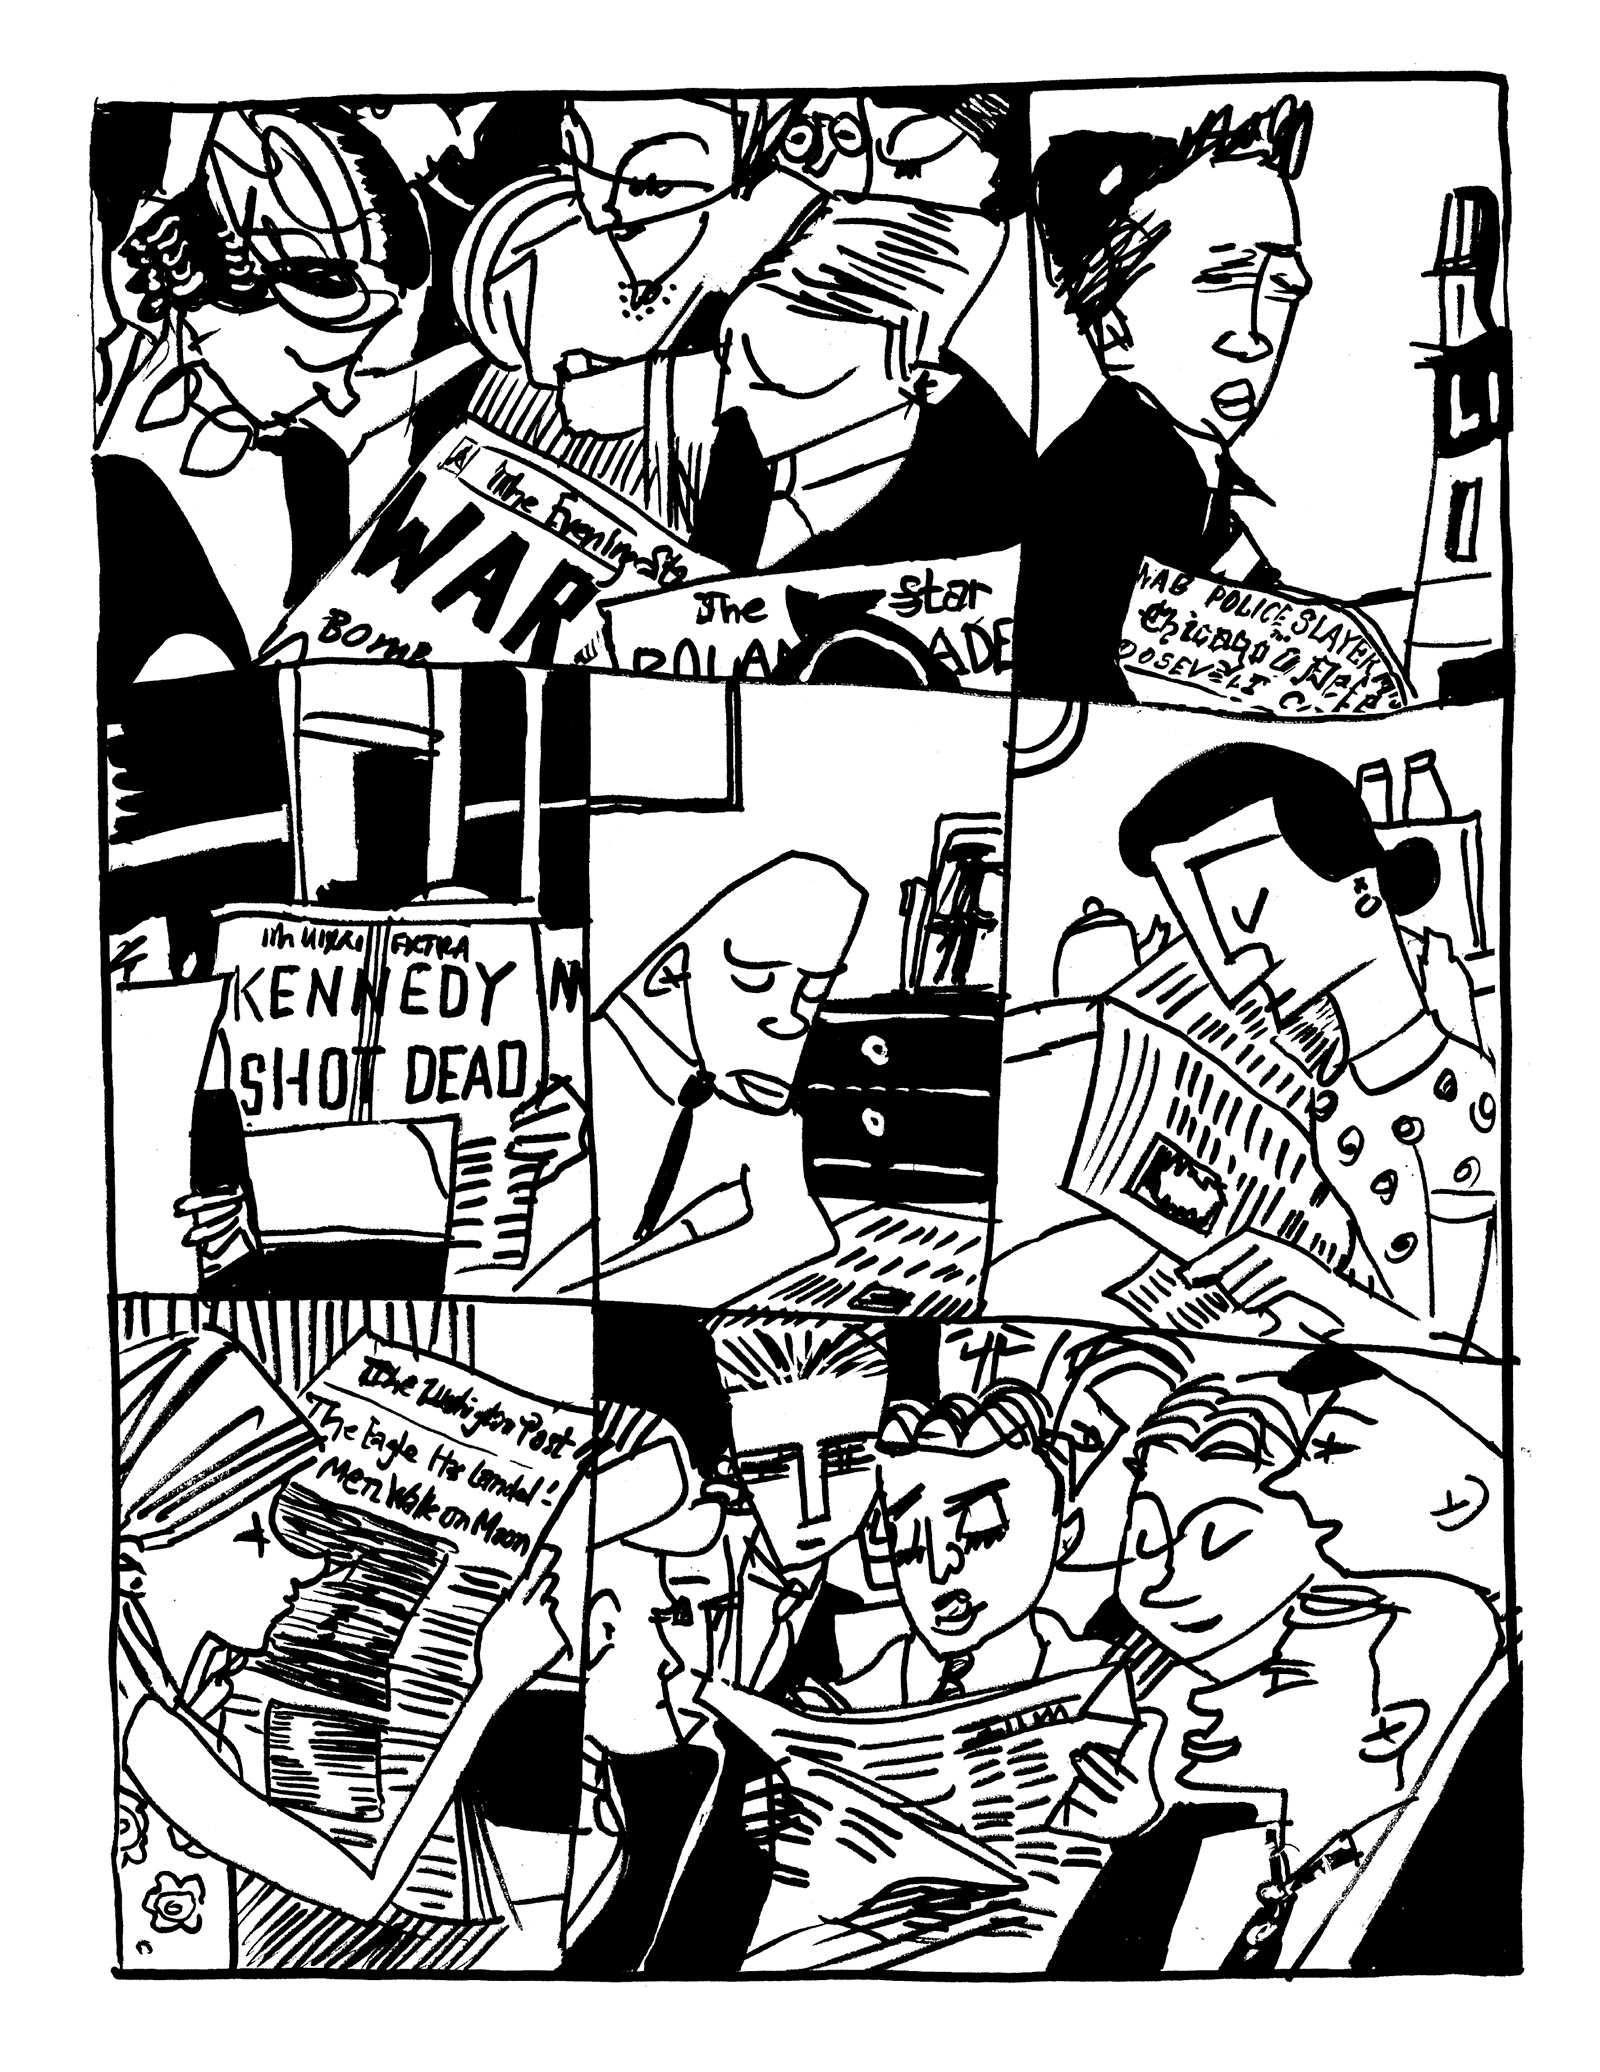 A drawing of people reading newspapers by Tom Bachtell